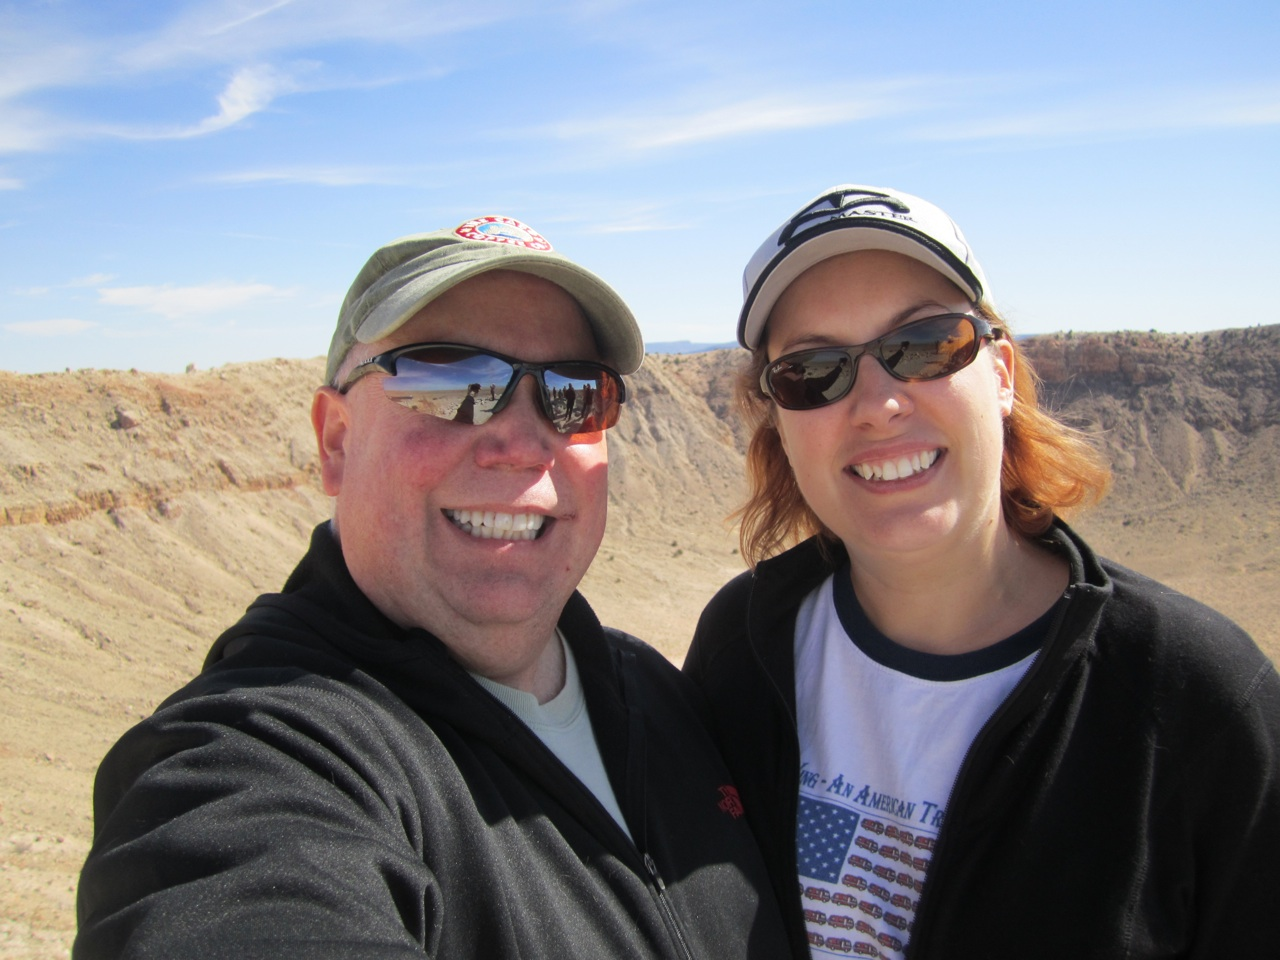 David & Brenda At The Meteor Crater Just Outside Of Winslow, AZ